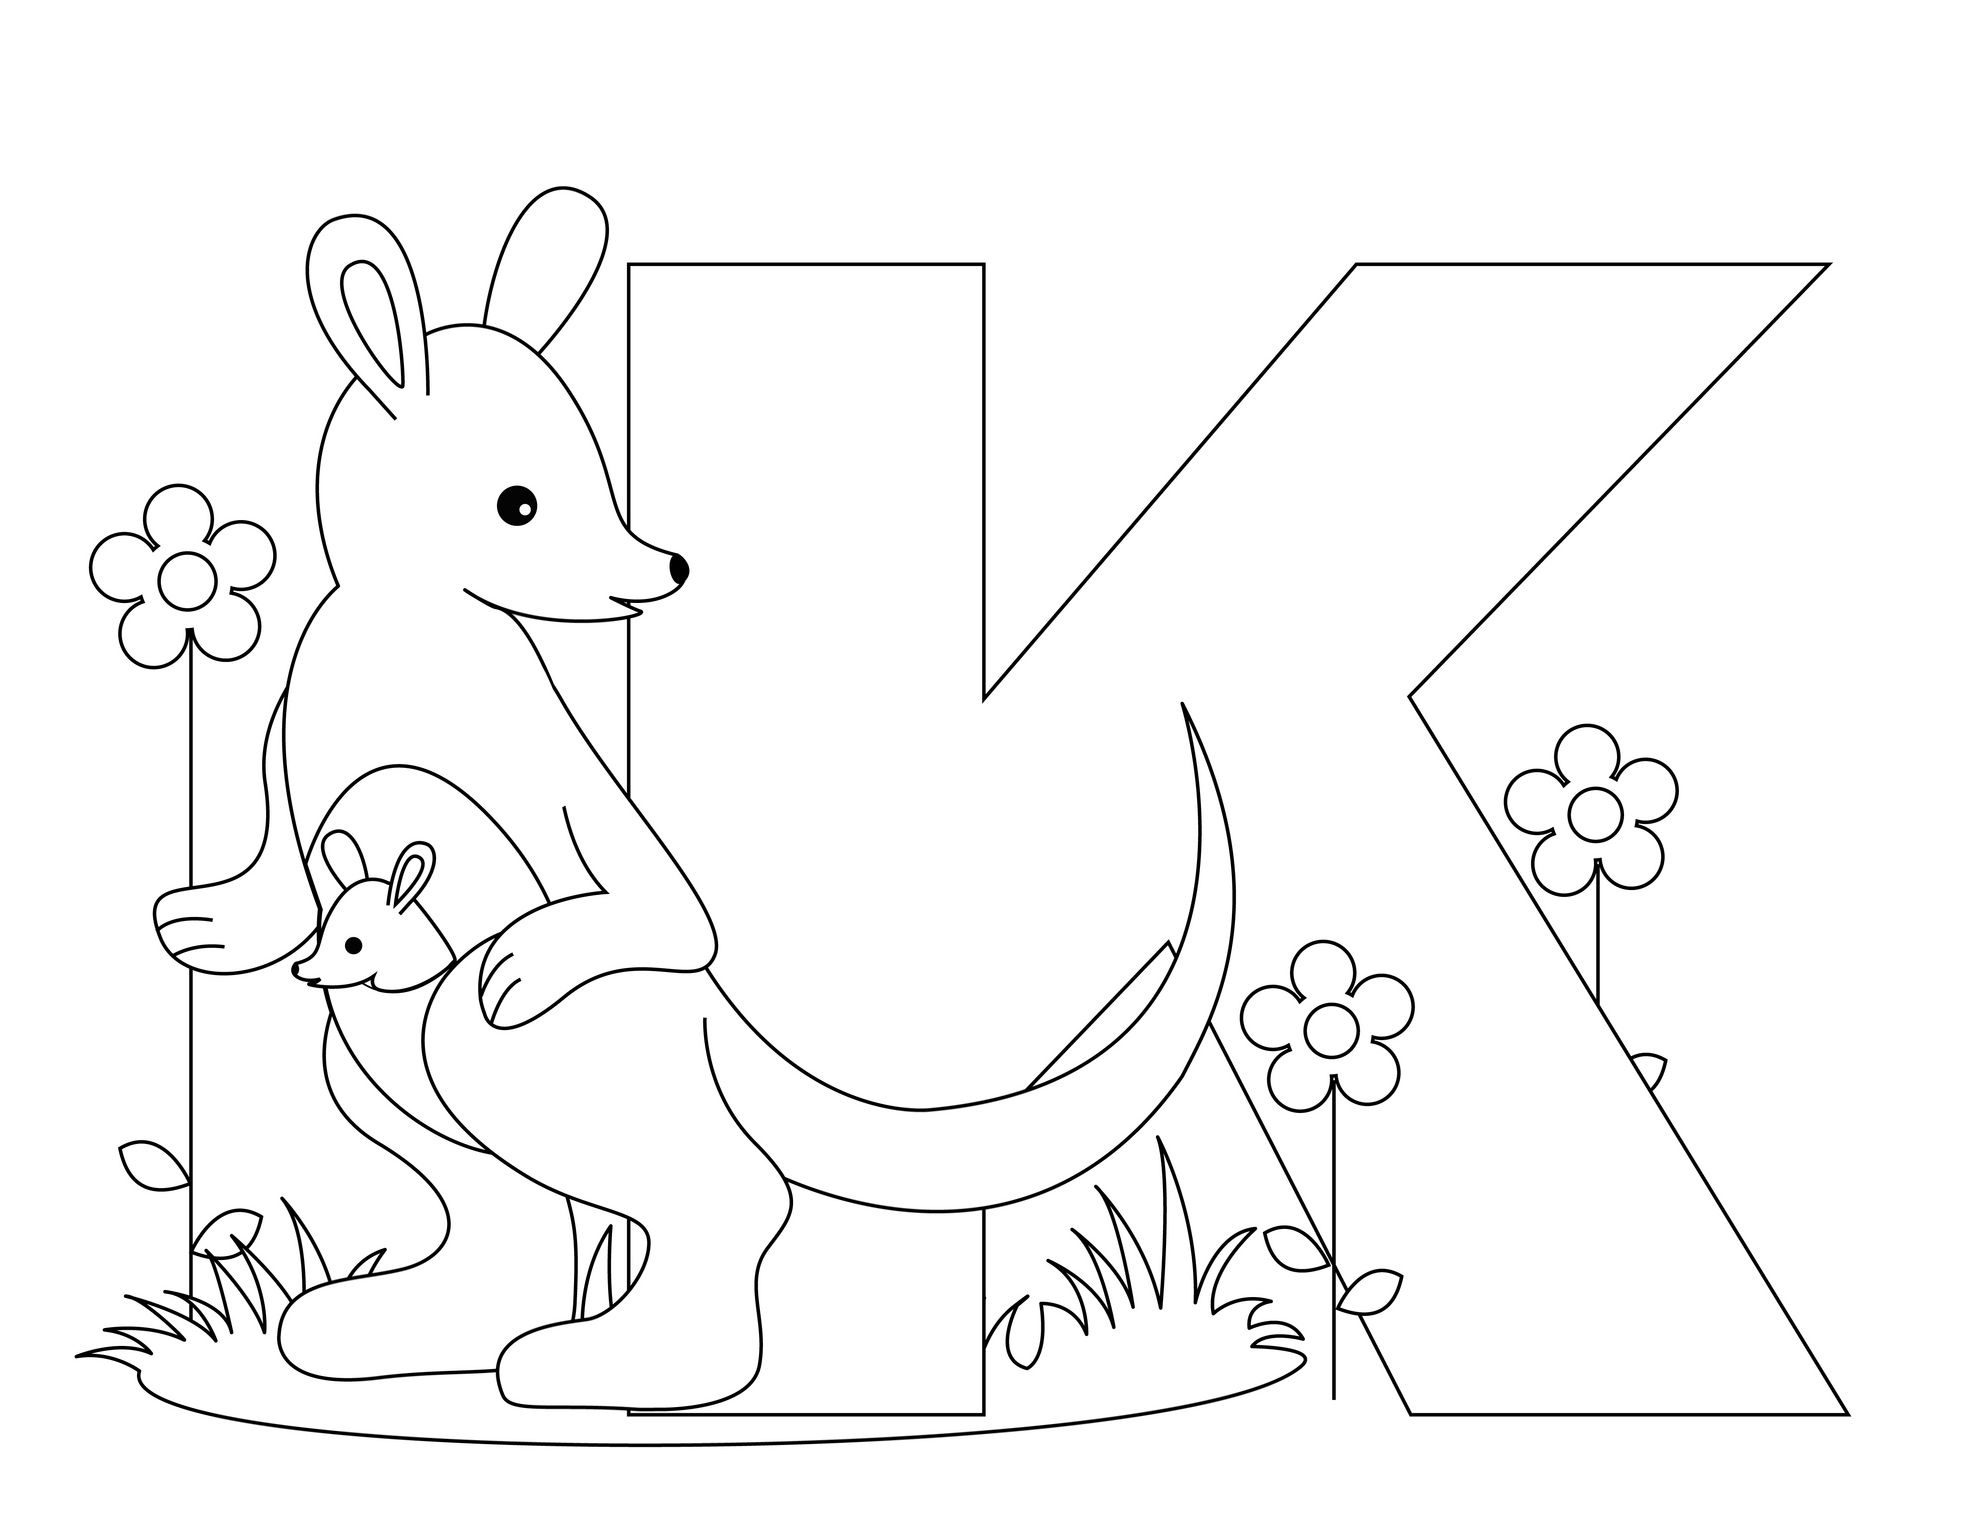 Free Kindergarten Alphabet Worksheets | Animal Alphabet: Letter K - Free Printable Animal Alphabet Letters